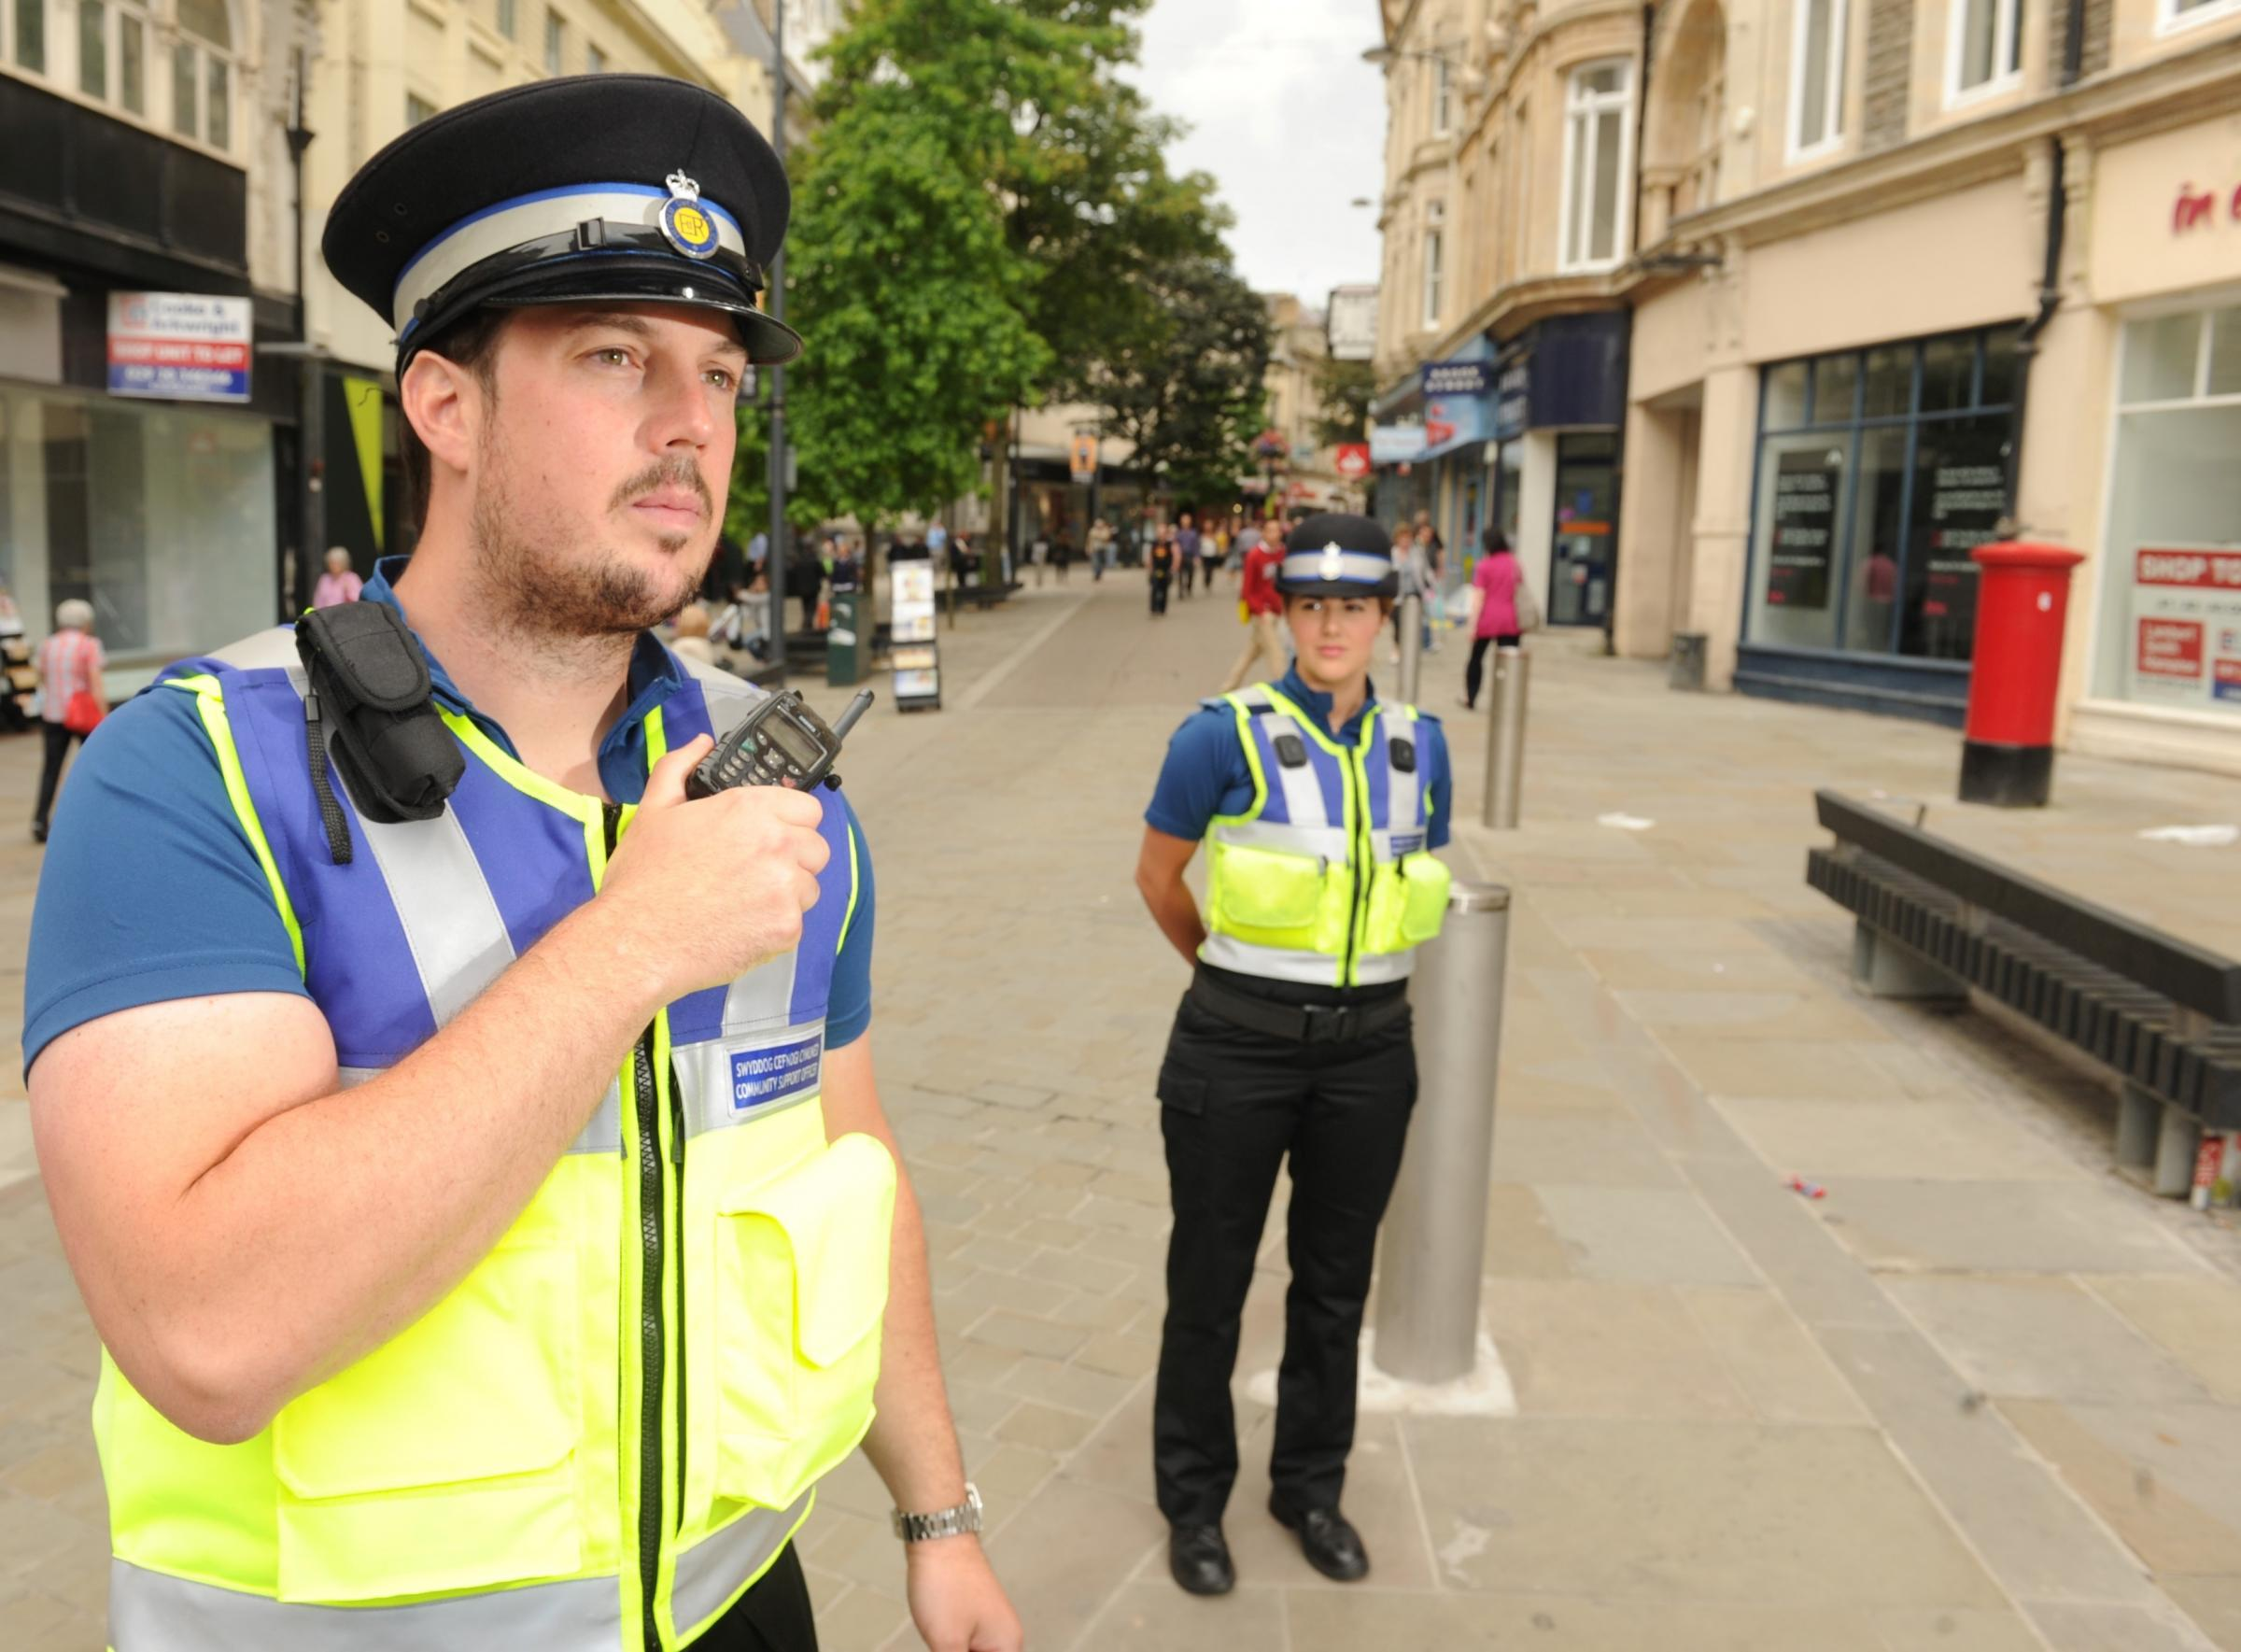 New powers bid to curb bad behaviour in Newport city centre